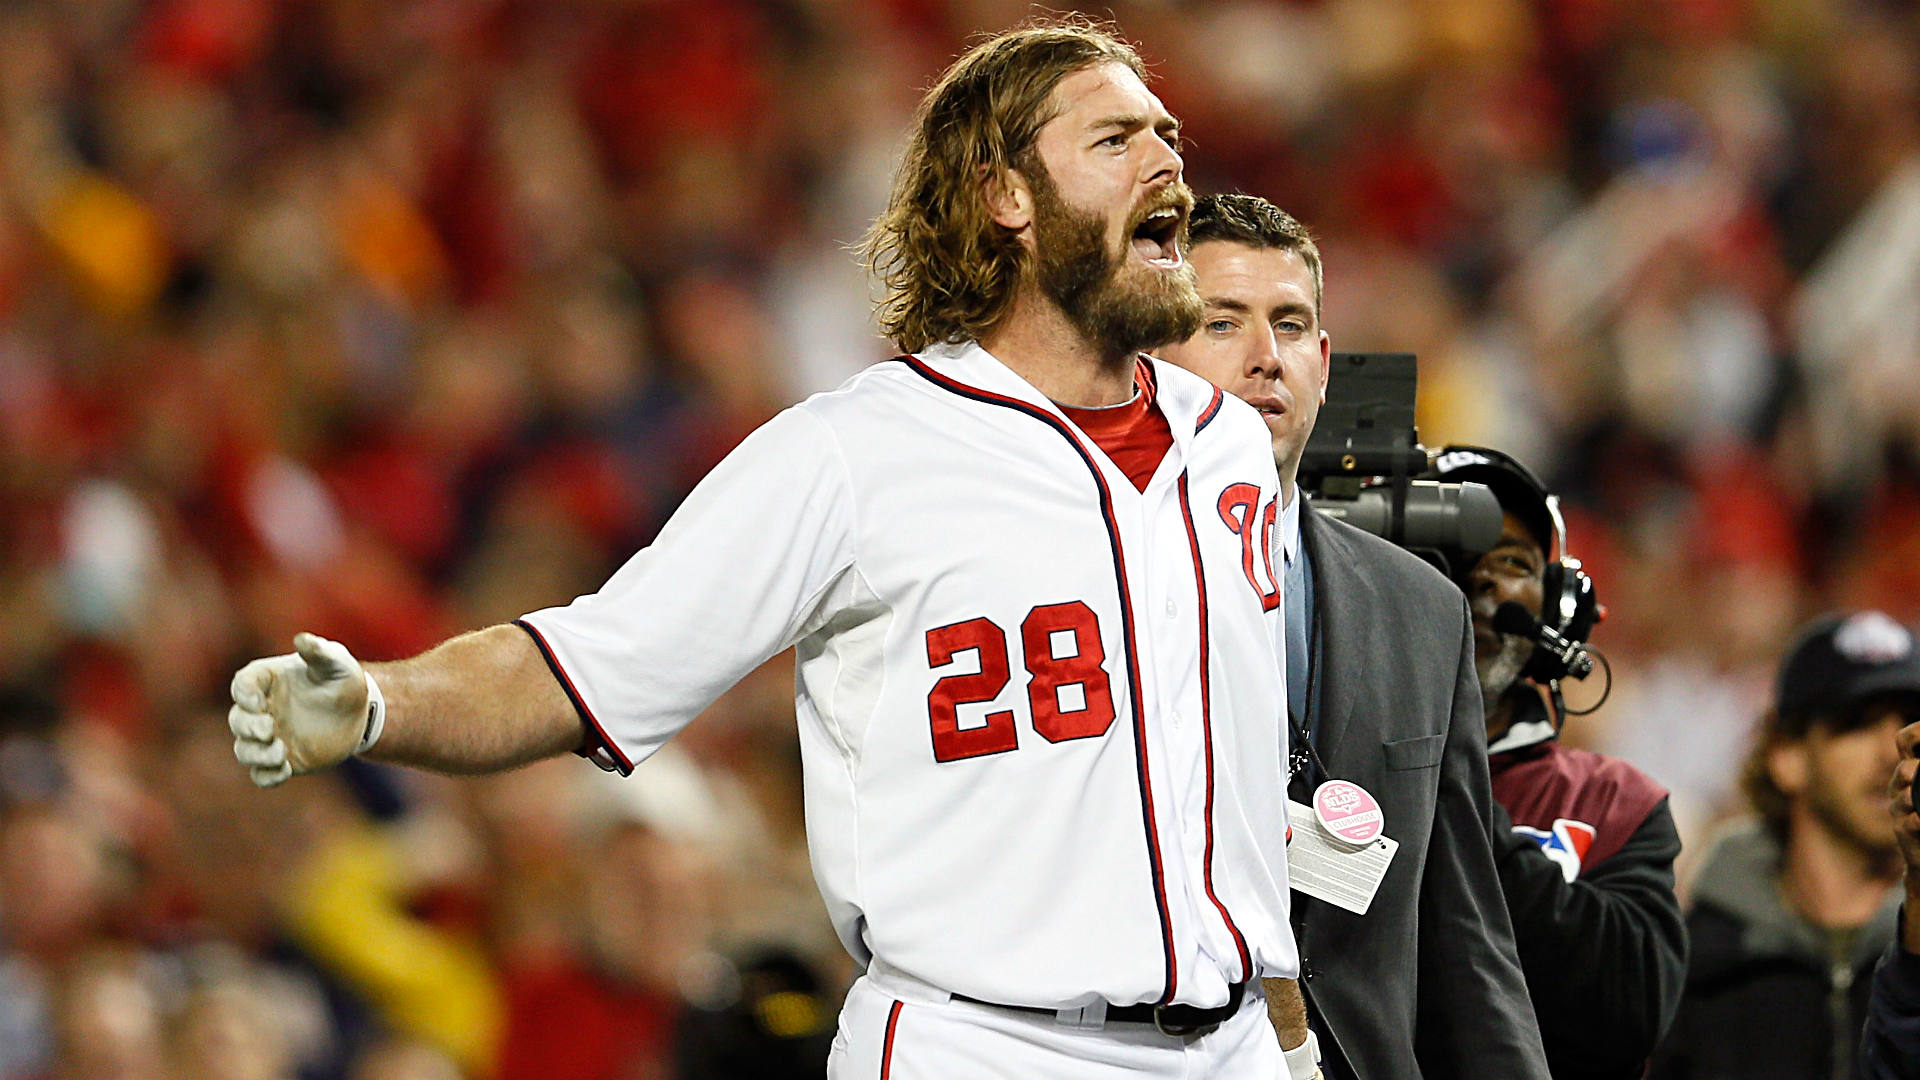 Jayson-Werth-Getty-FTR.jpg